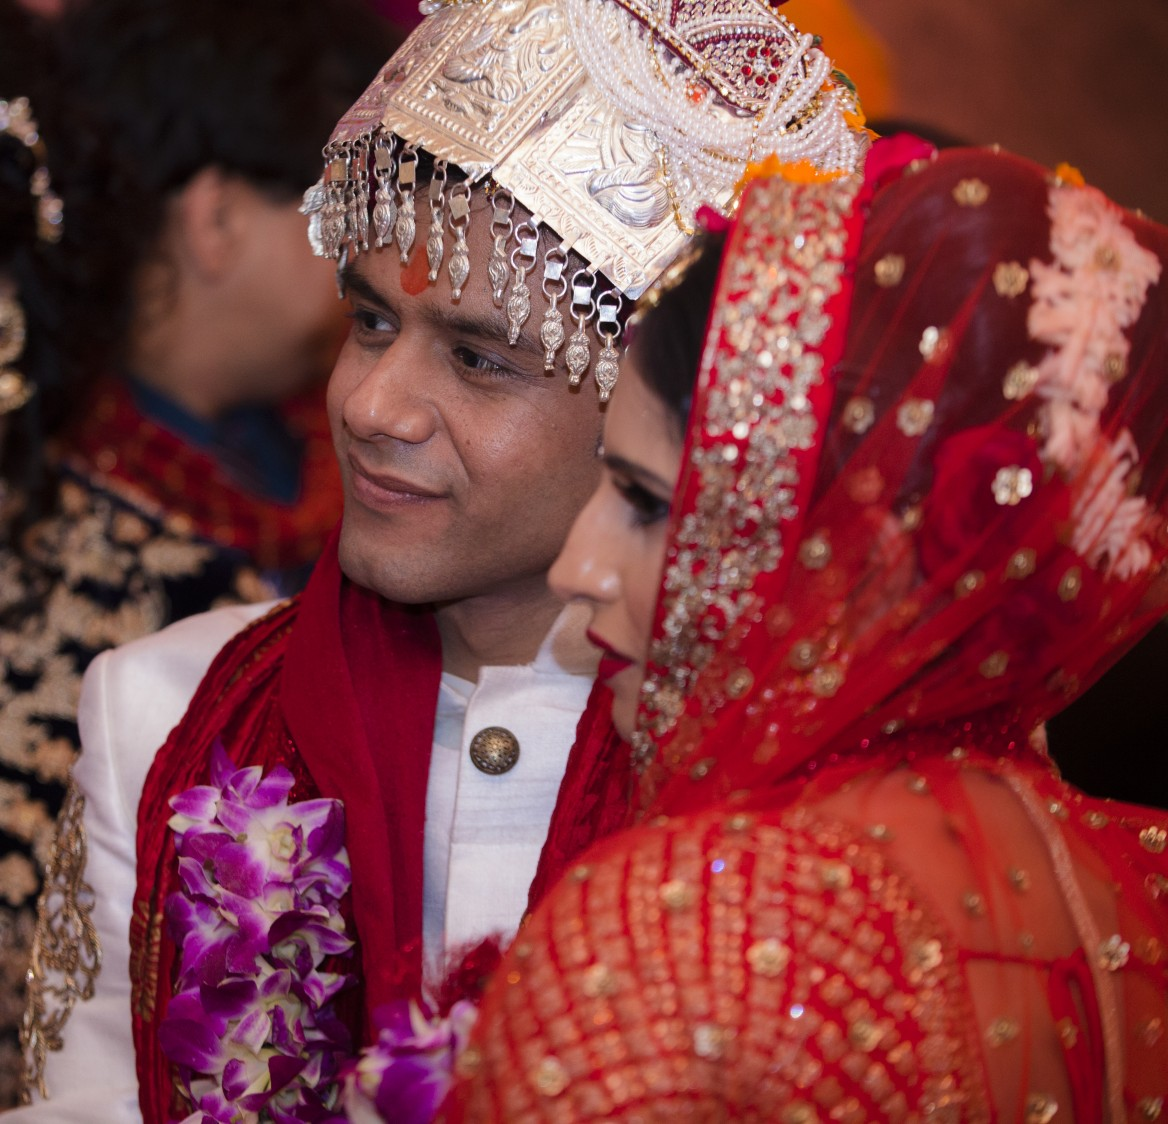 Candid Shot Of Bride And Groom by Arpit Gulati Wedding-photography | Weddings Photos & Ideas